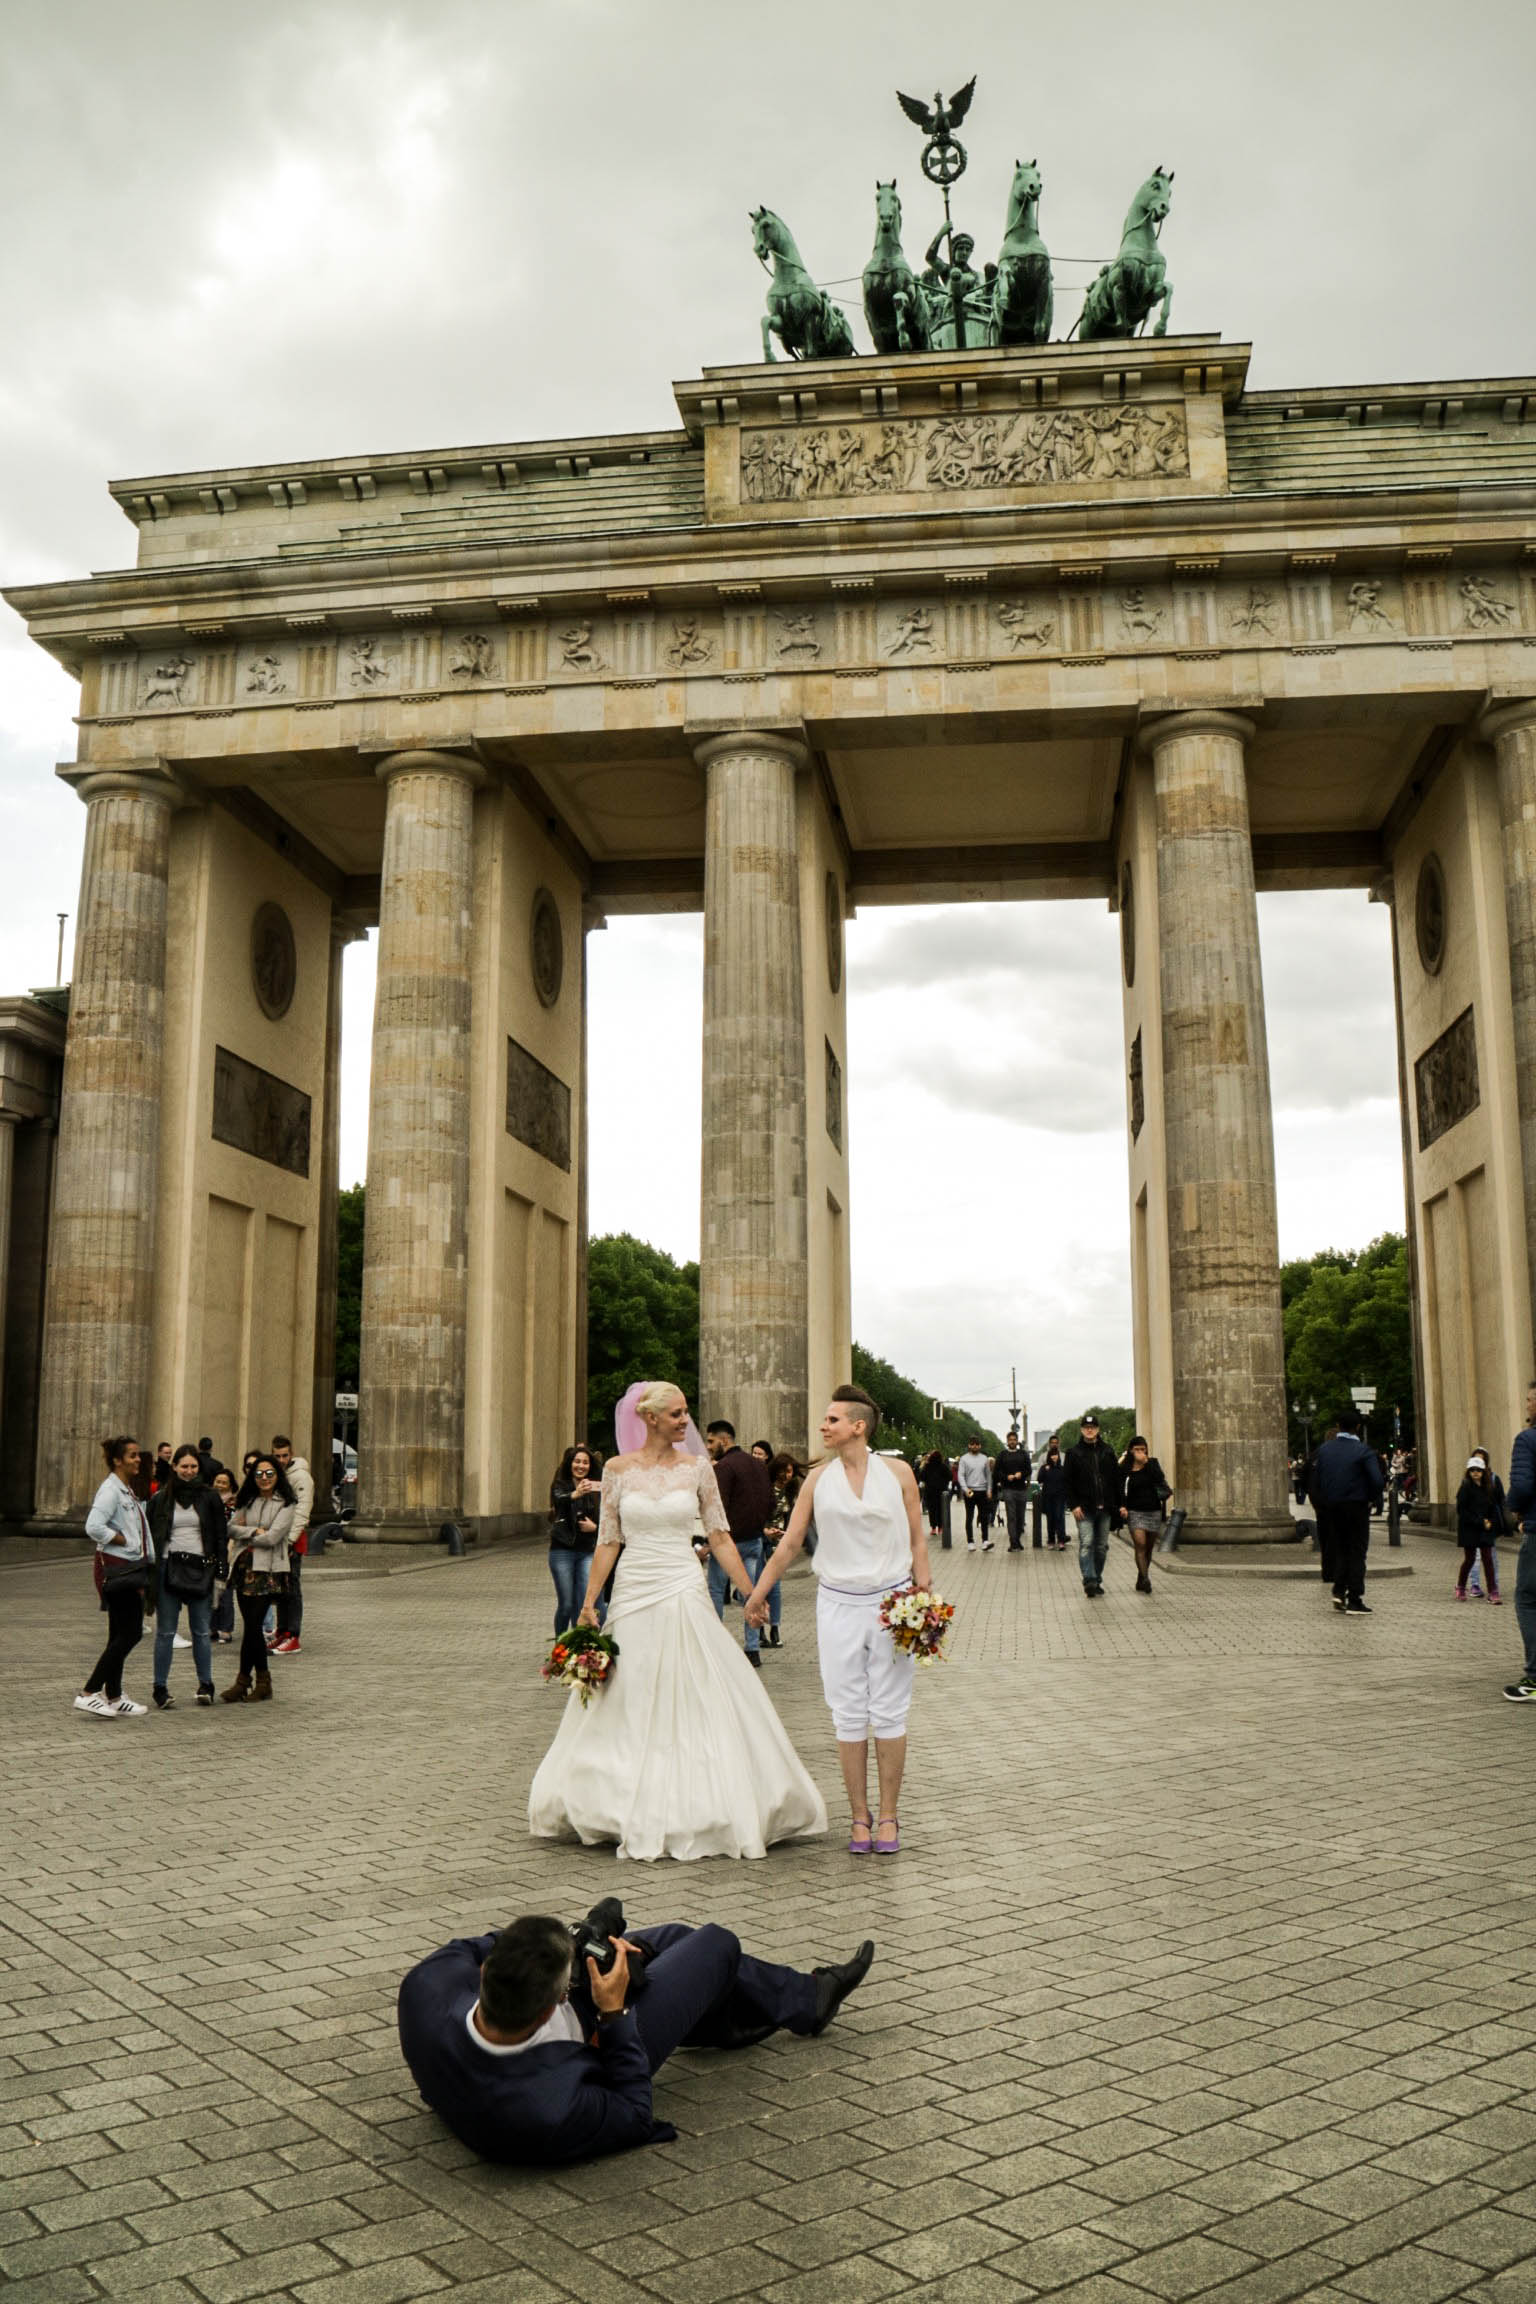 wedding photos for the happy couple in front of the brandenburg